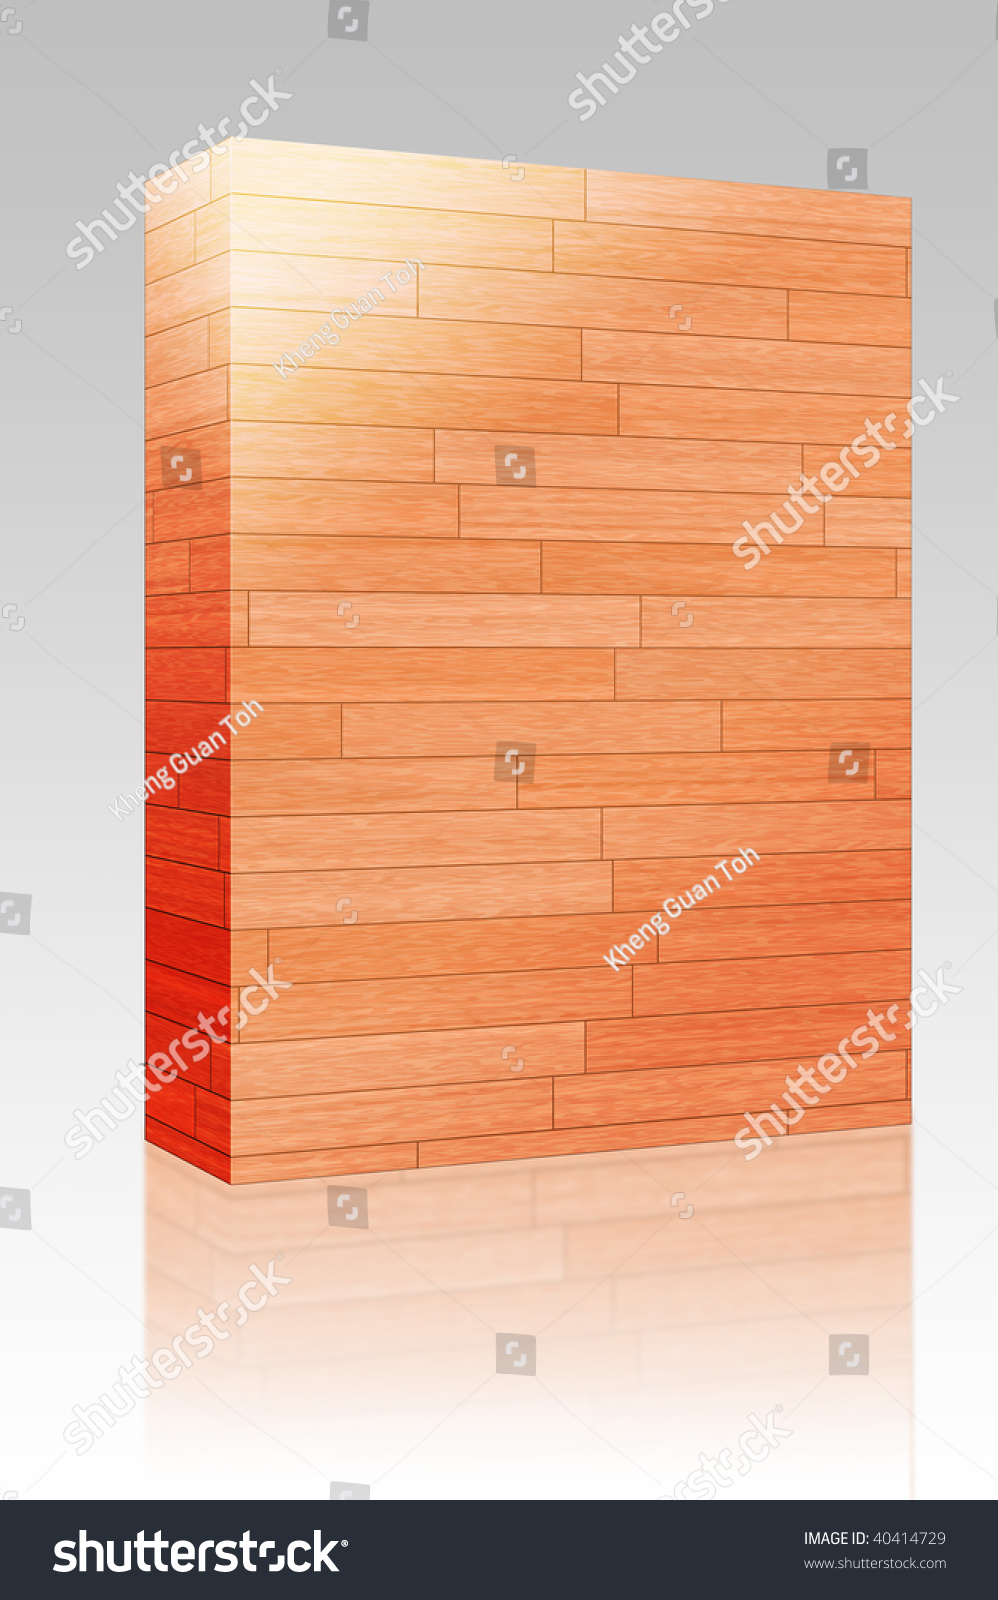 software package box wooden parquet flooring surface pattern texture seamless background stock. Black Bedroom Furniture Sets. Home Design Ideas